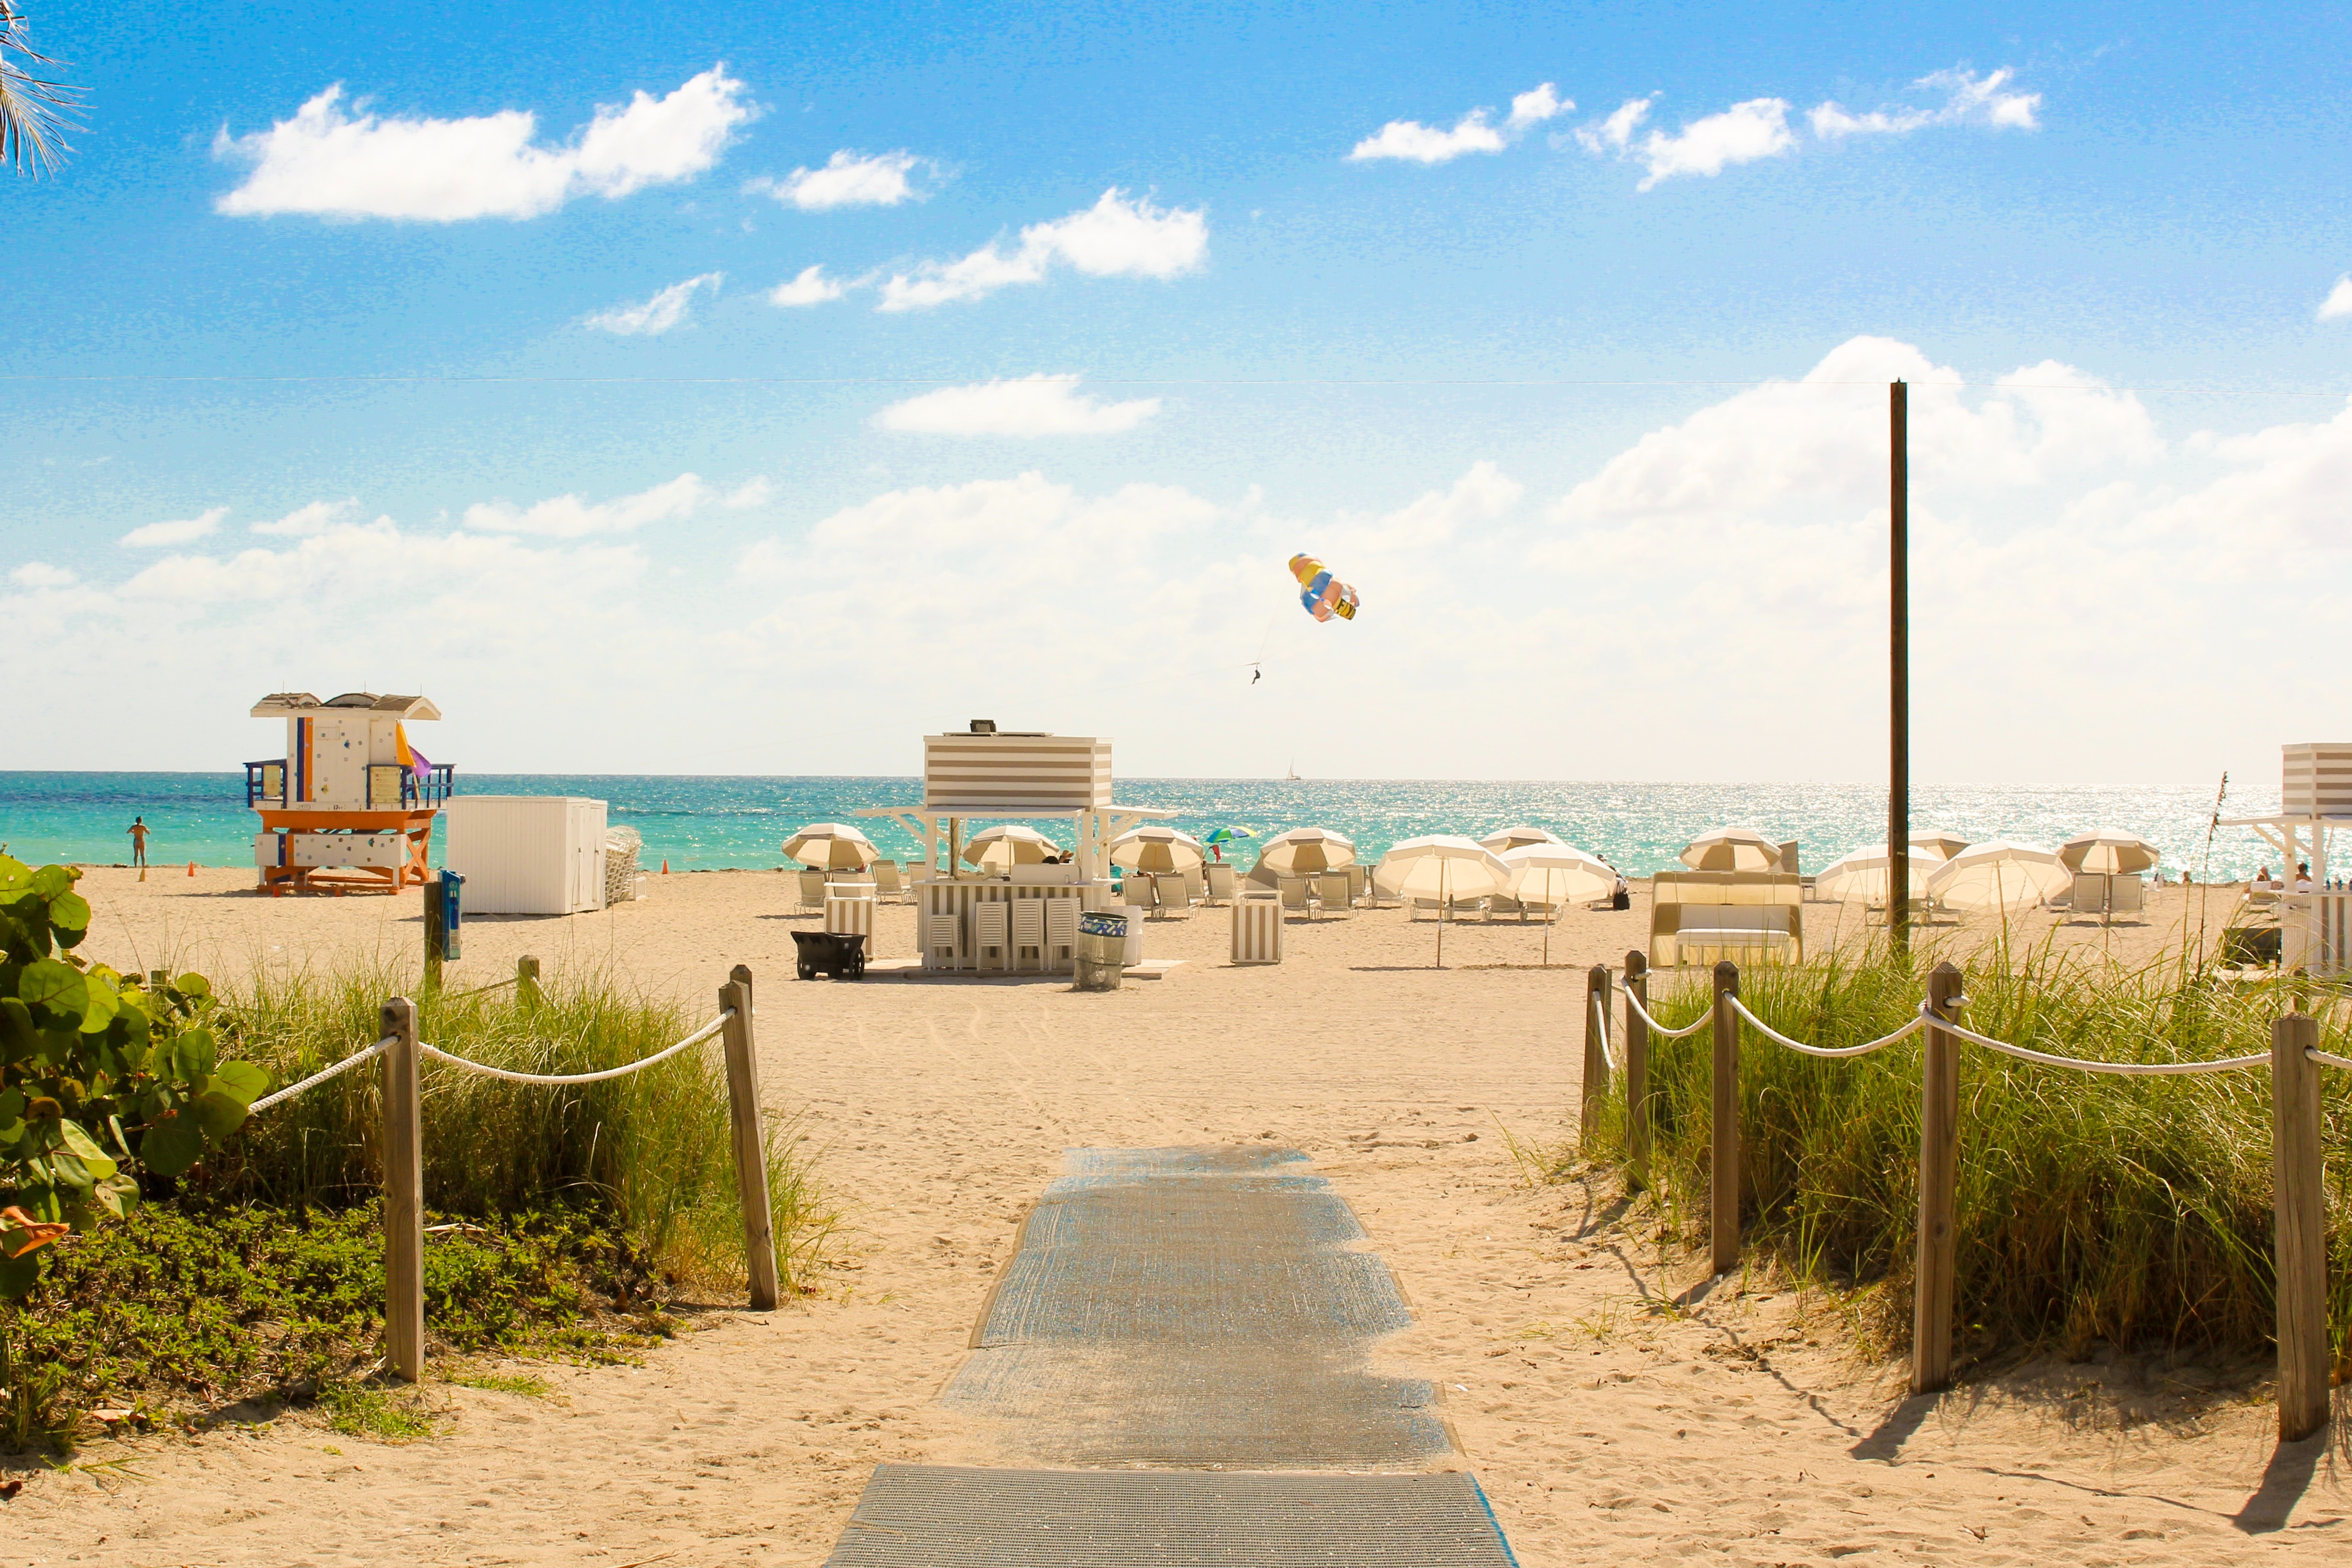 Miami Beach Invites Travelers to Take a Micro-cation to Start the New Year